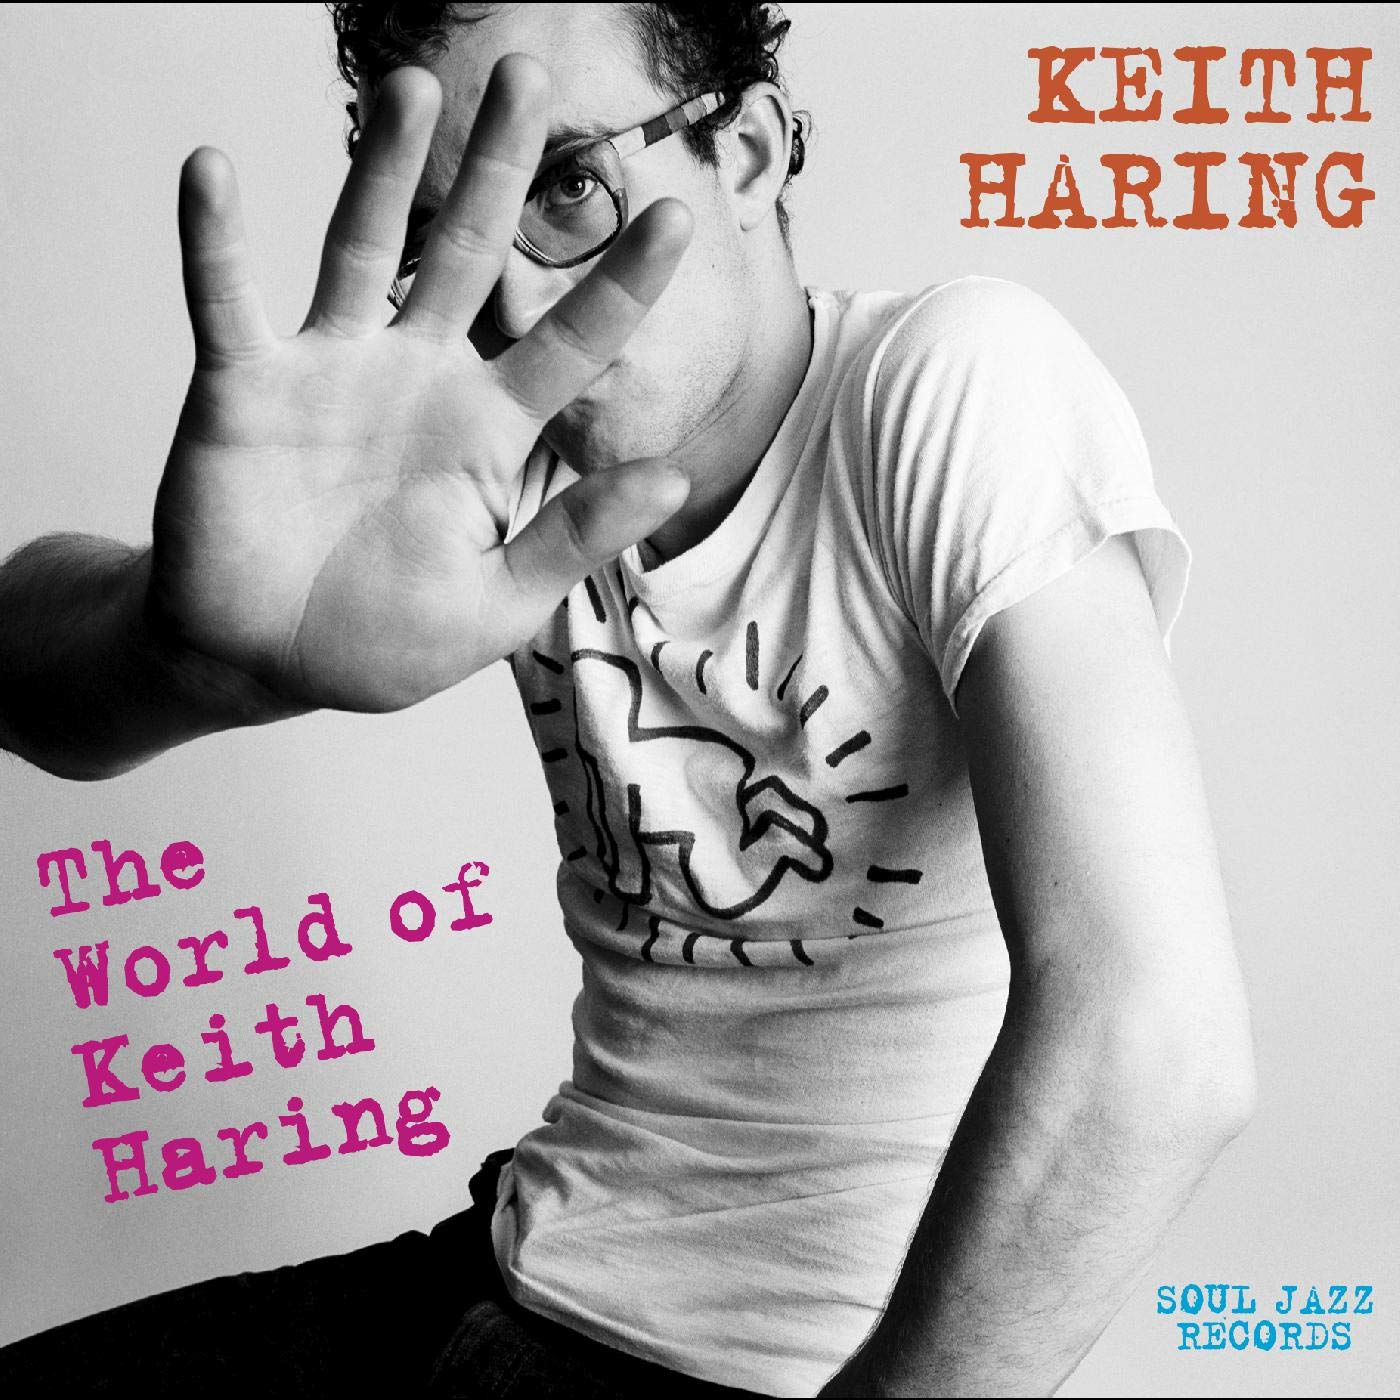 The World Of Keith Haring 2cd